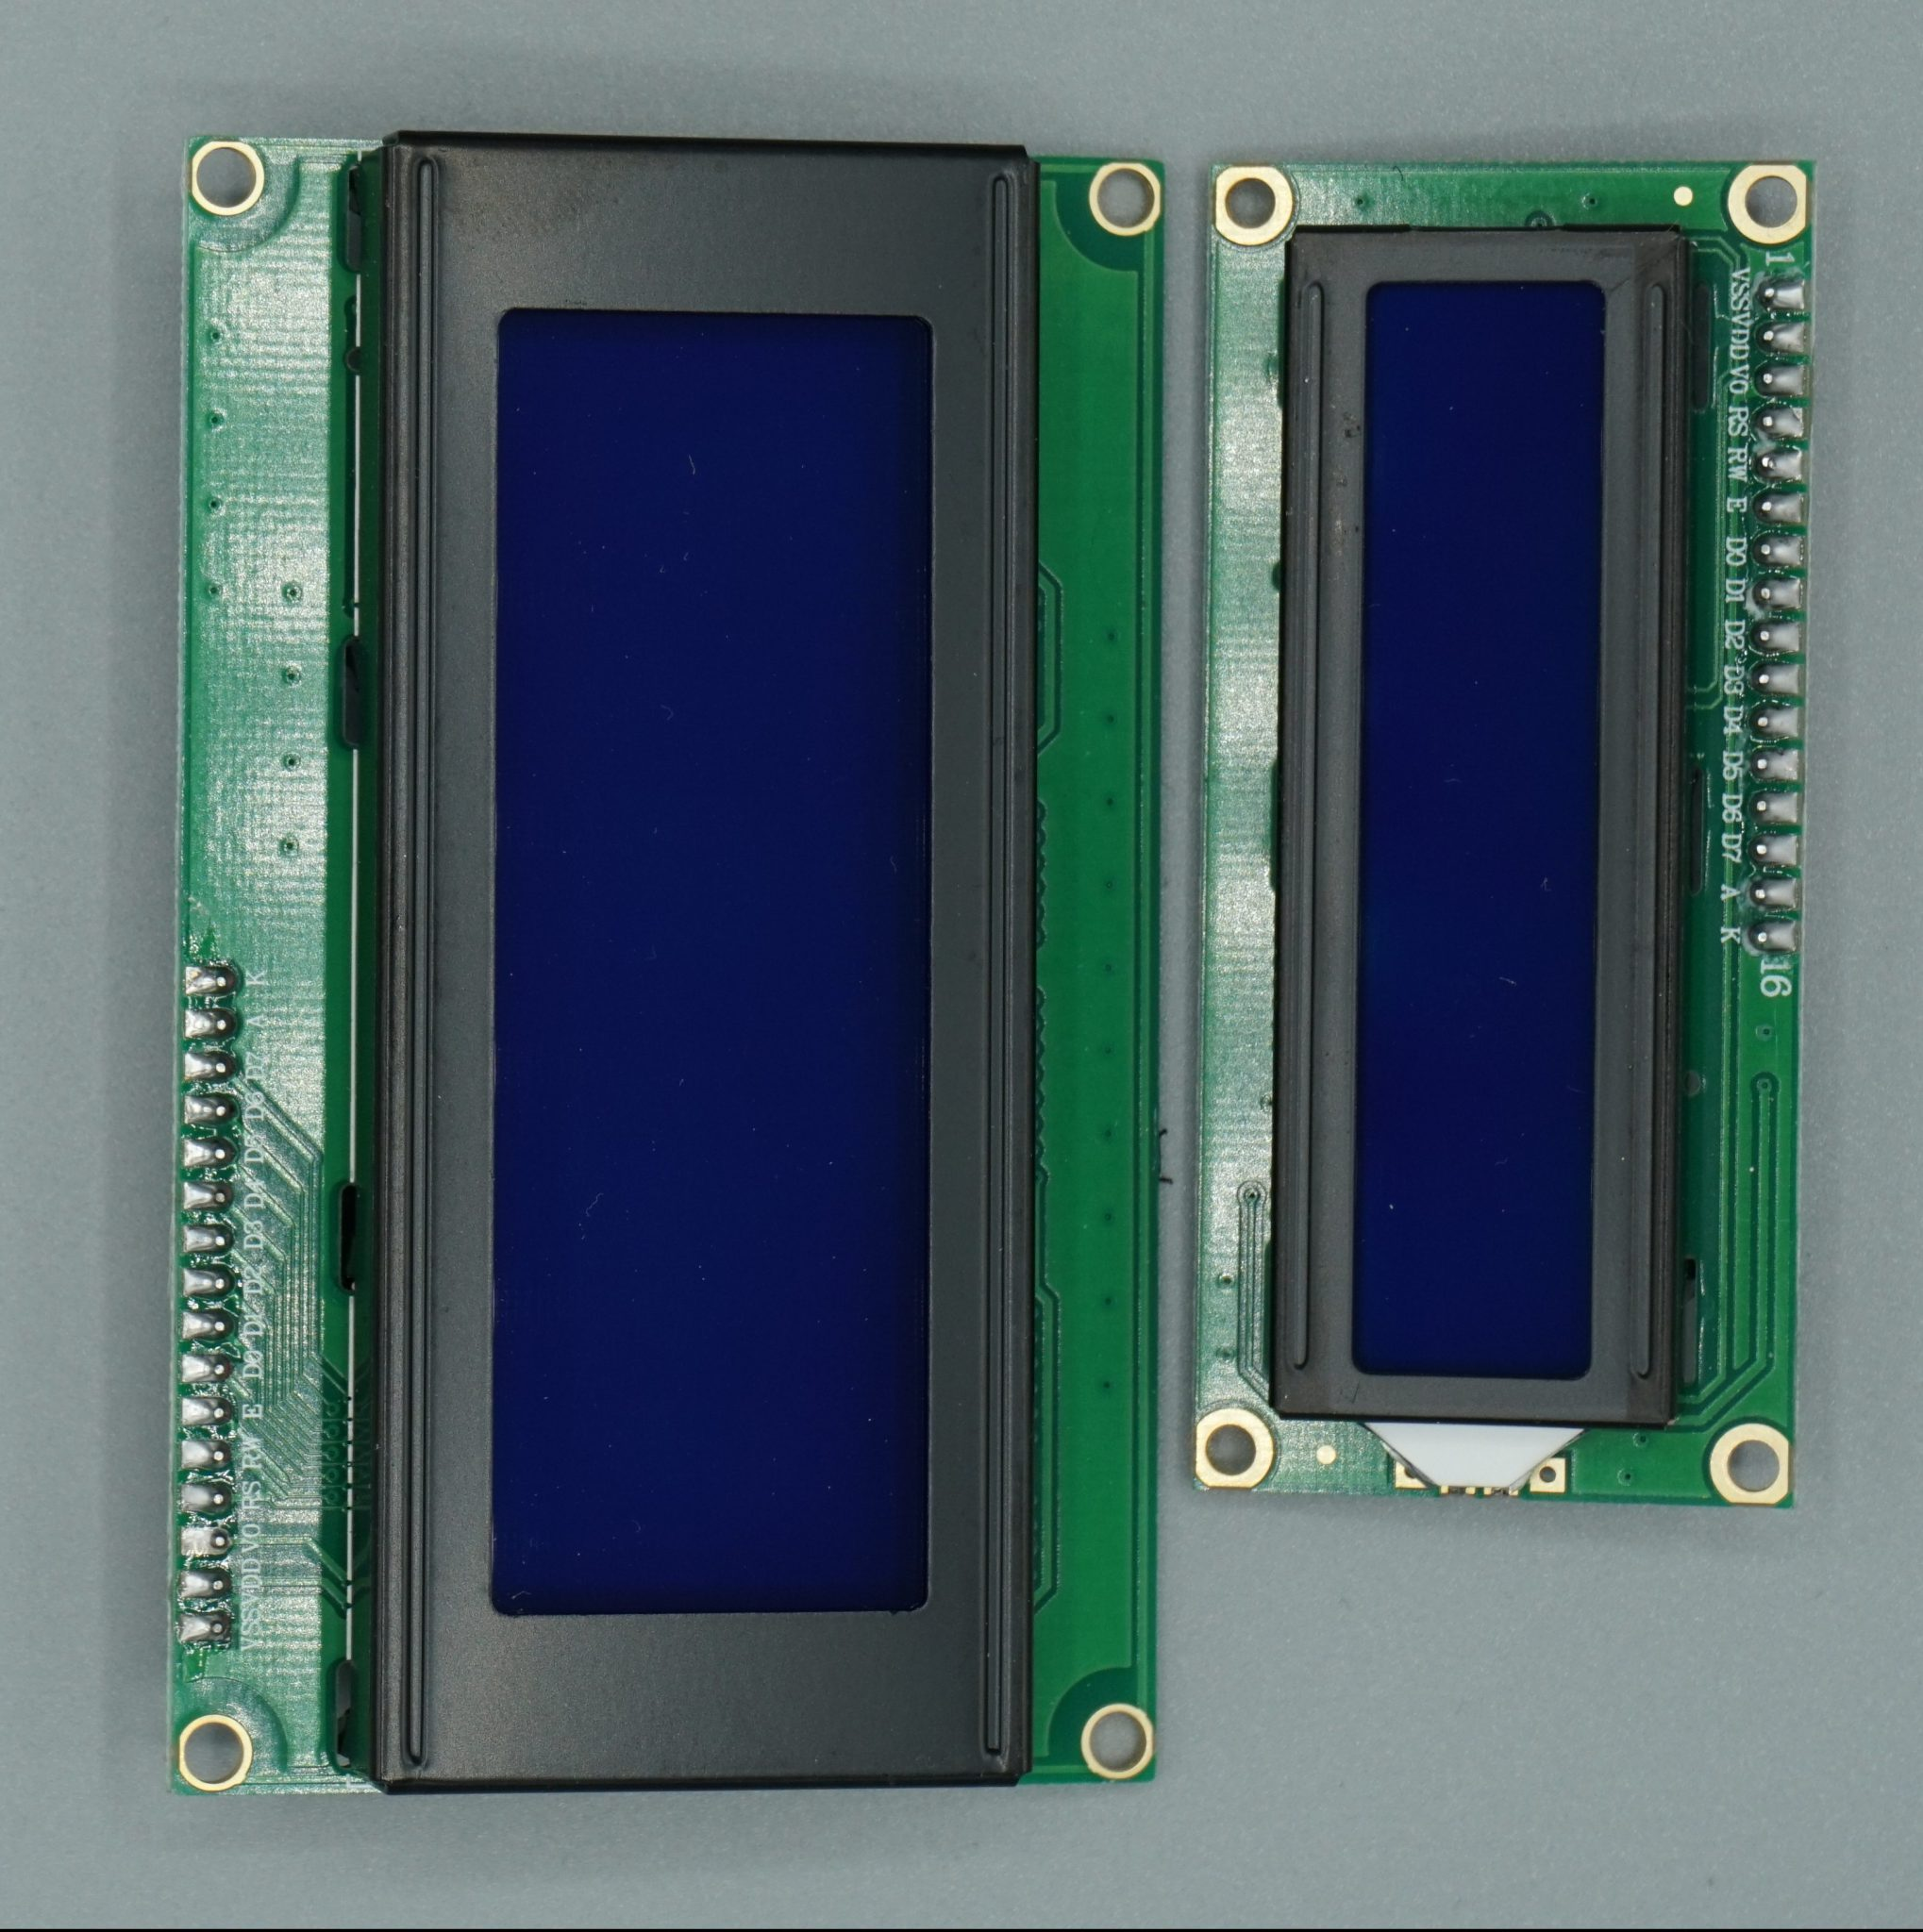 LCD display comparison